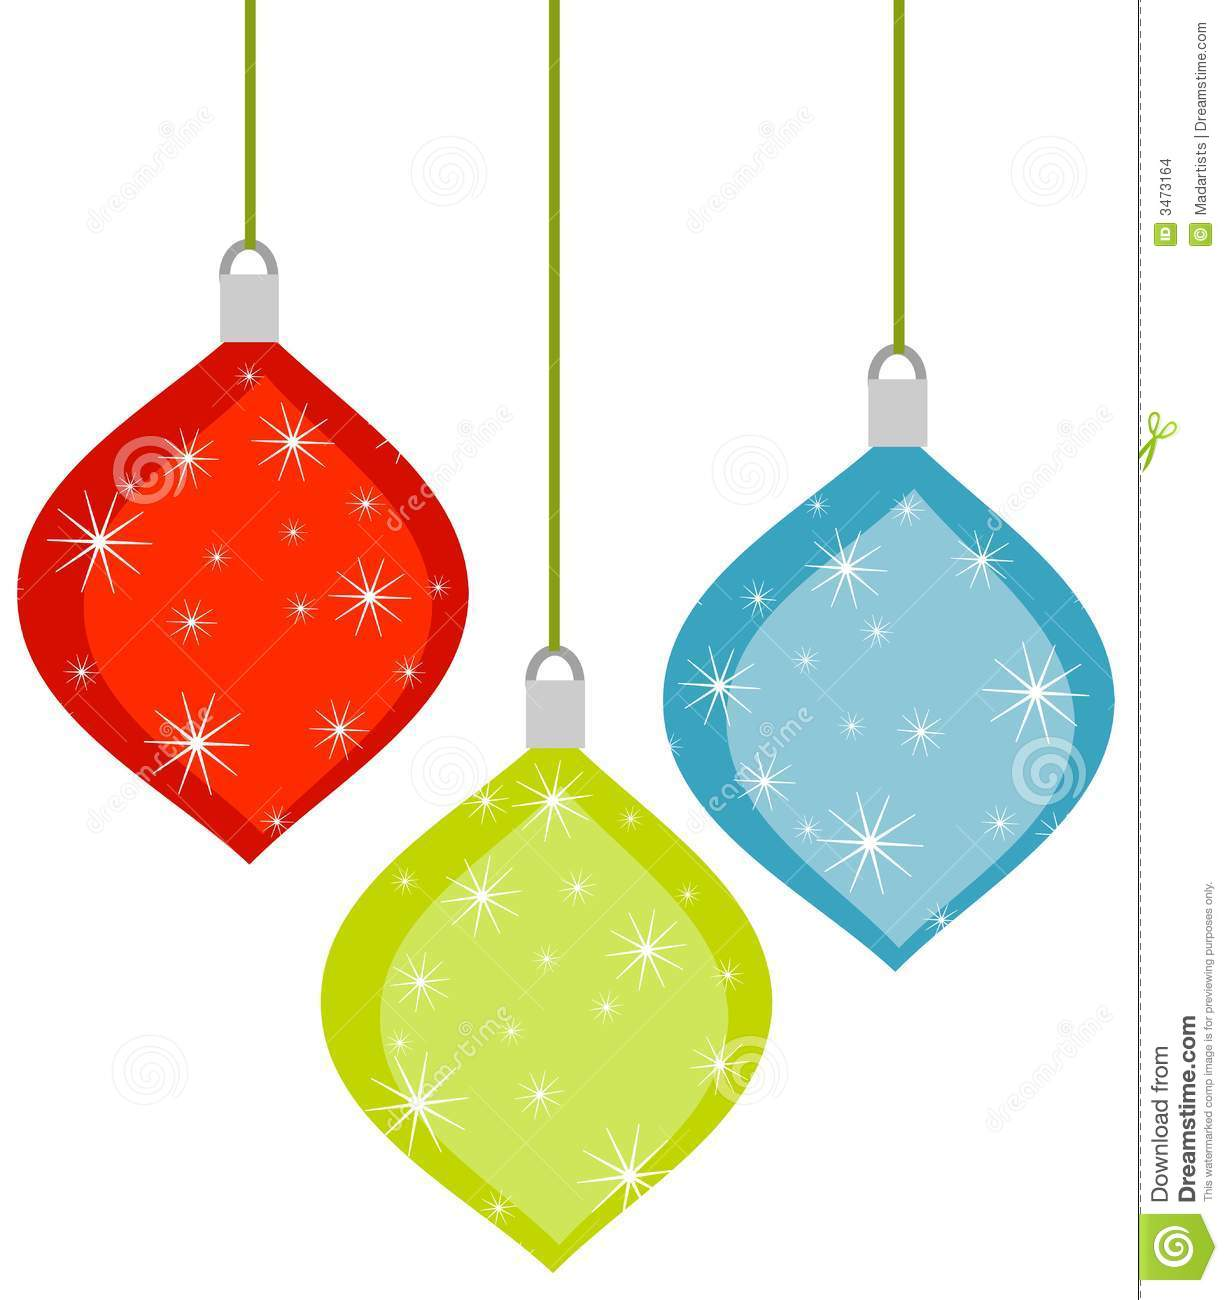 Decoration clipart holiday ornament Clipart clipart Christmas ornament 2014